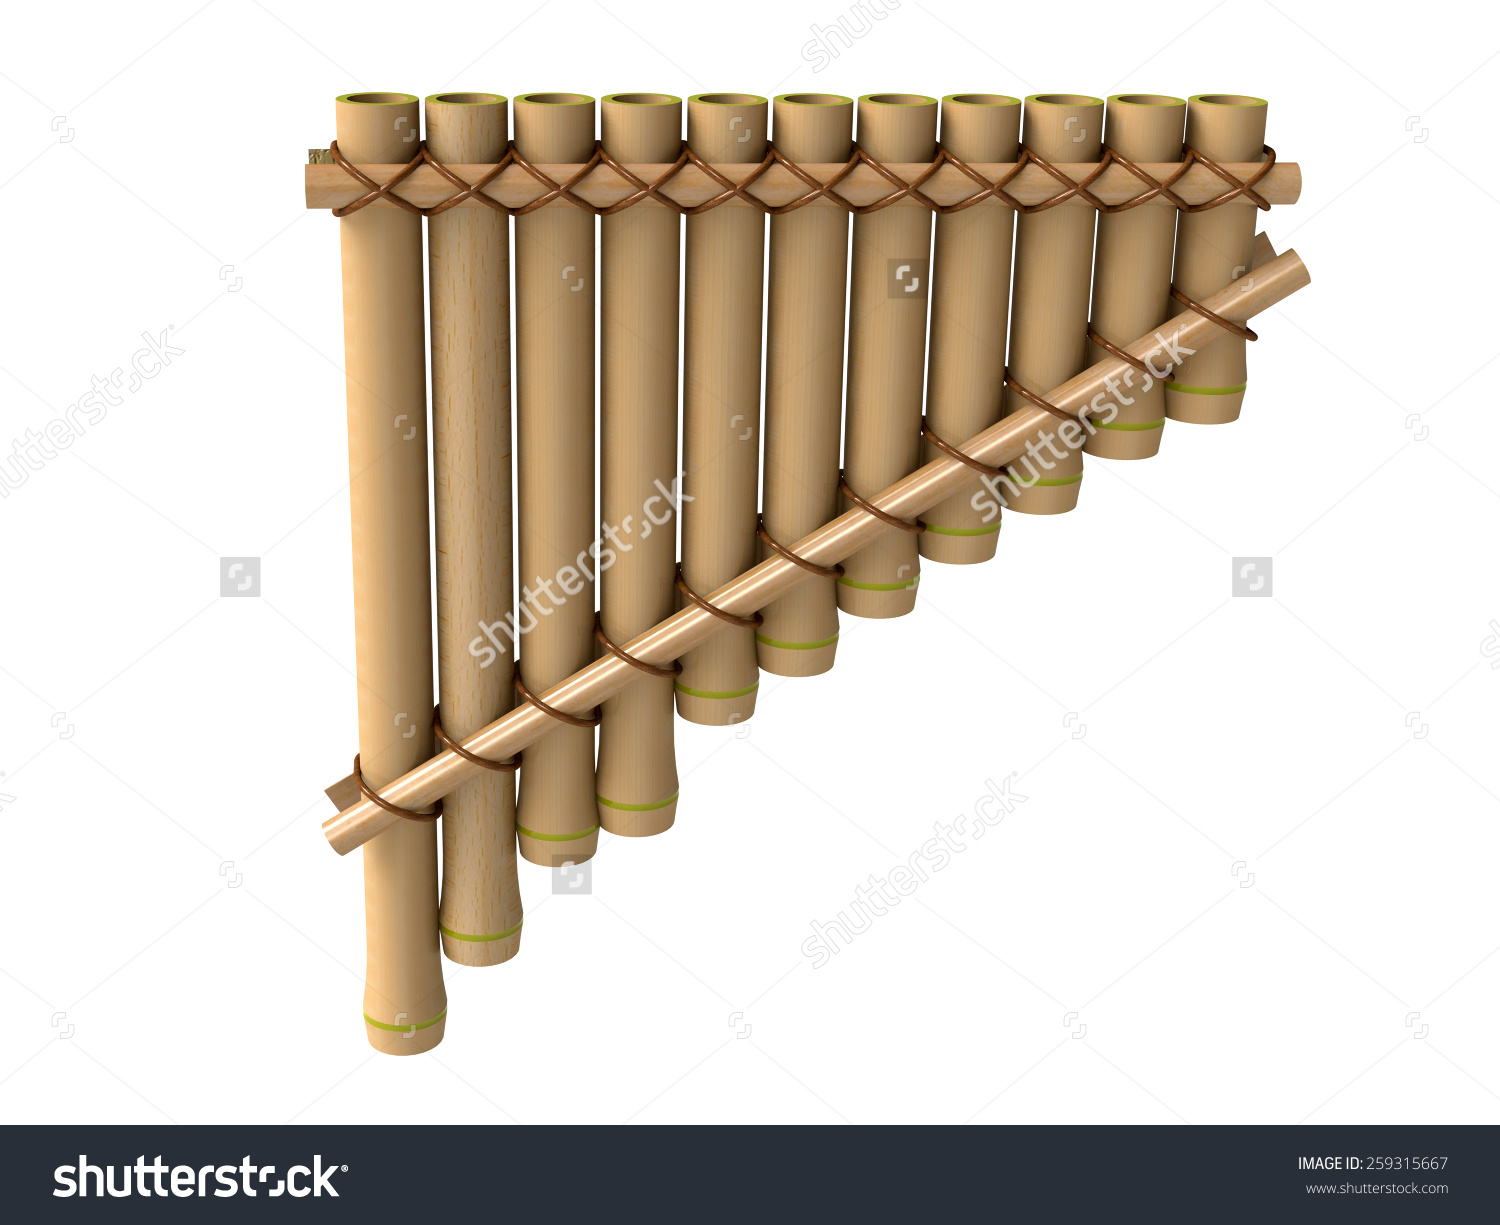 Pan Flute Bamboo Flute Pan Pipes Stock Illustration 259315667.